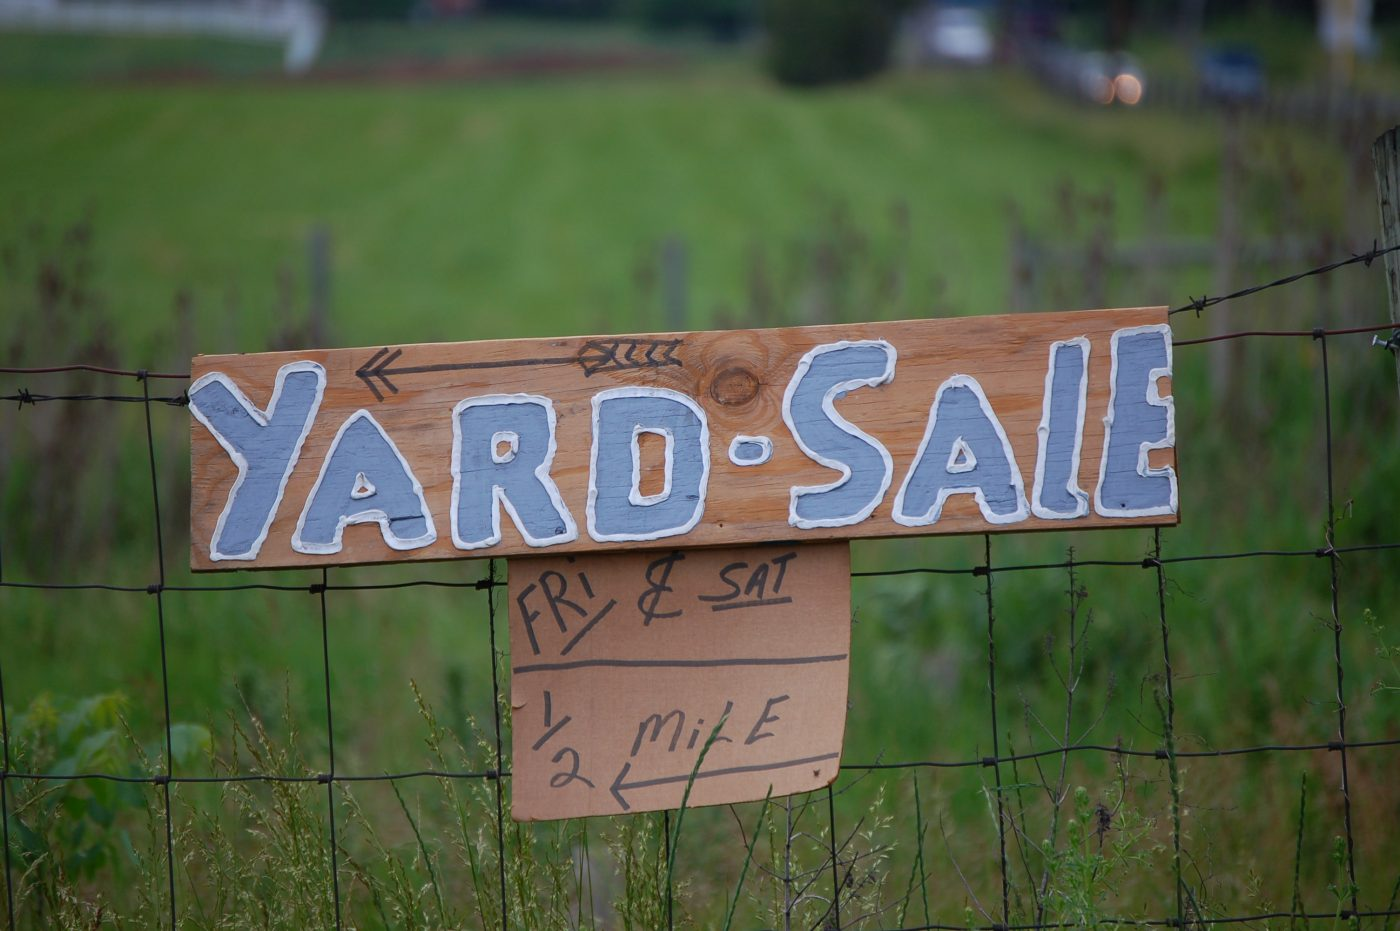 yard-sale-1447253-freeimages-by-kathleen-m